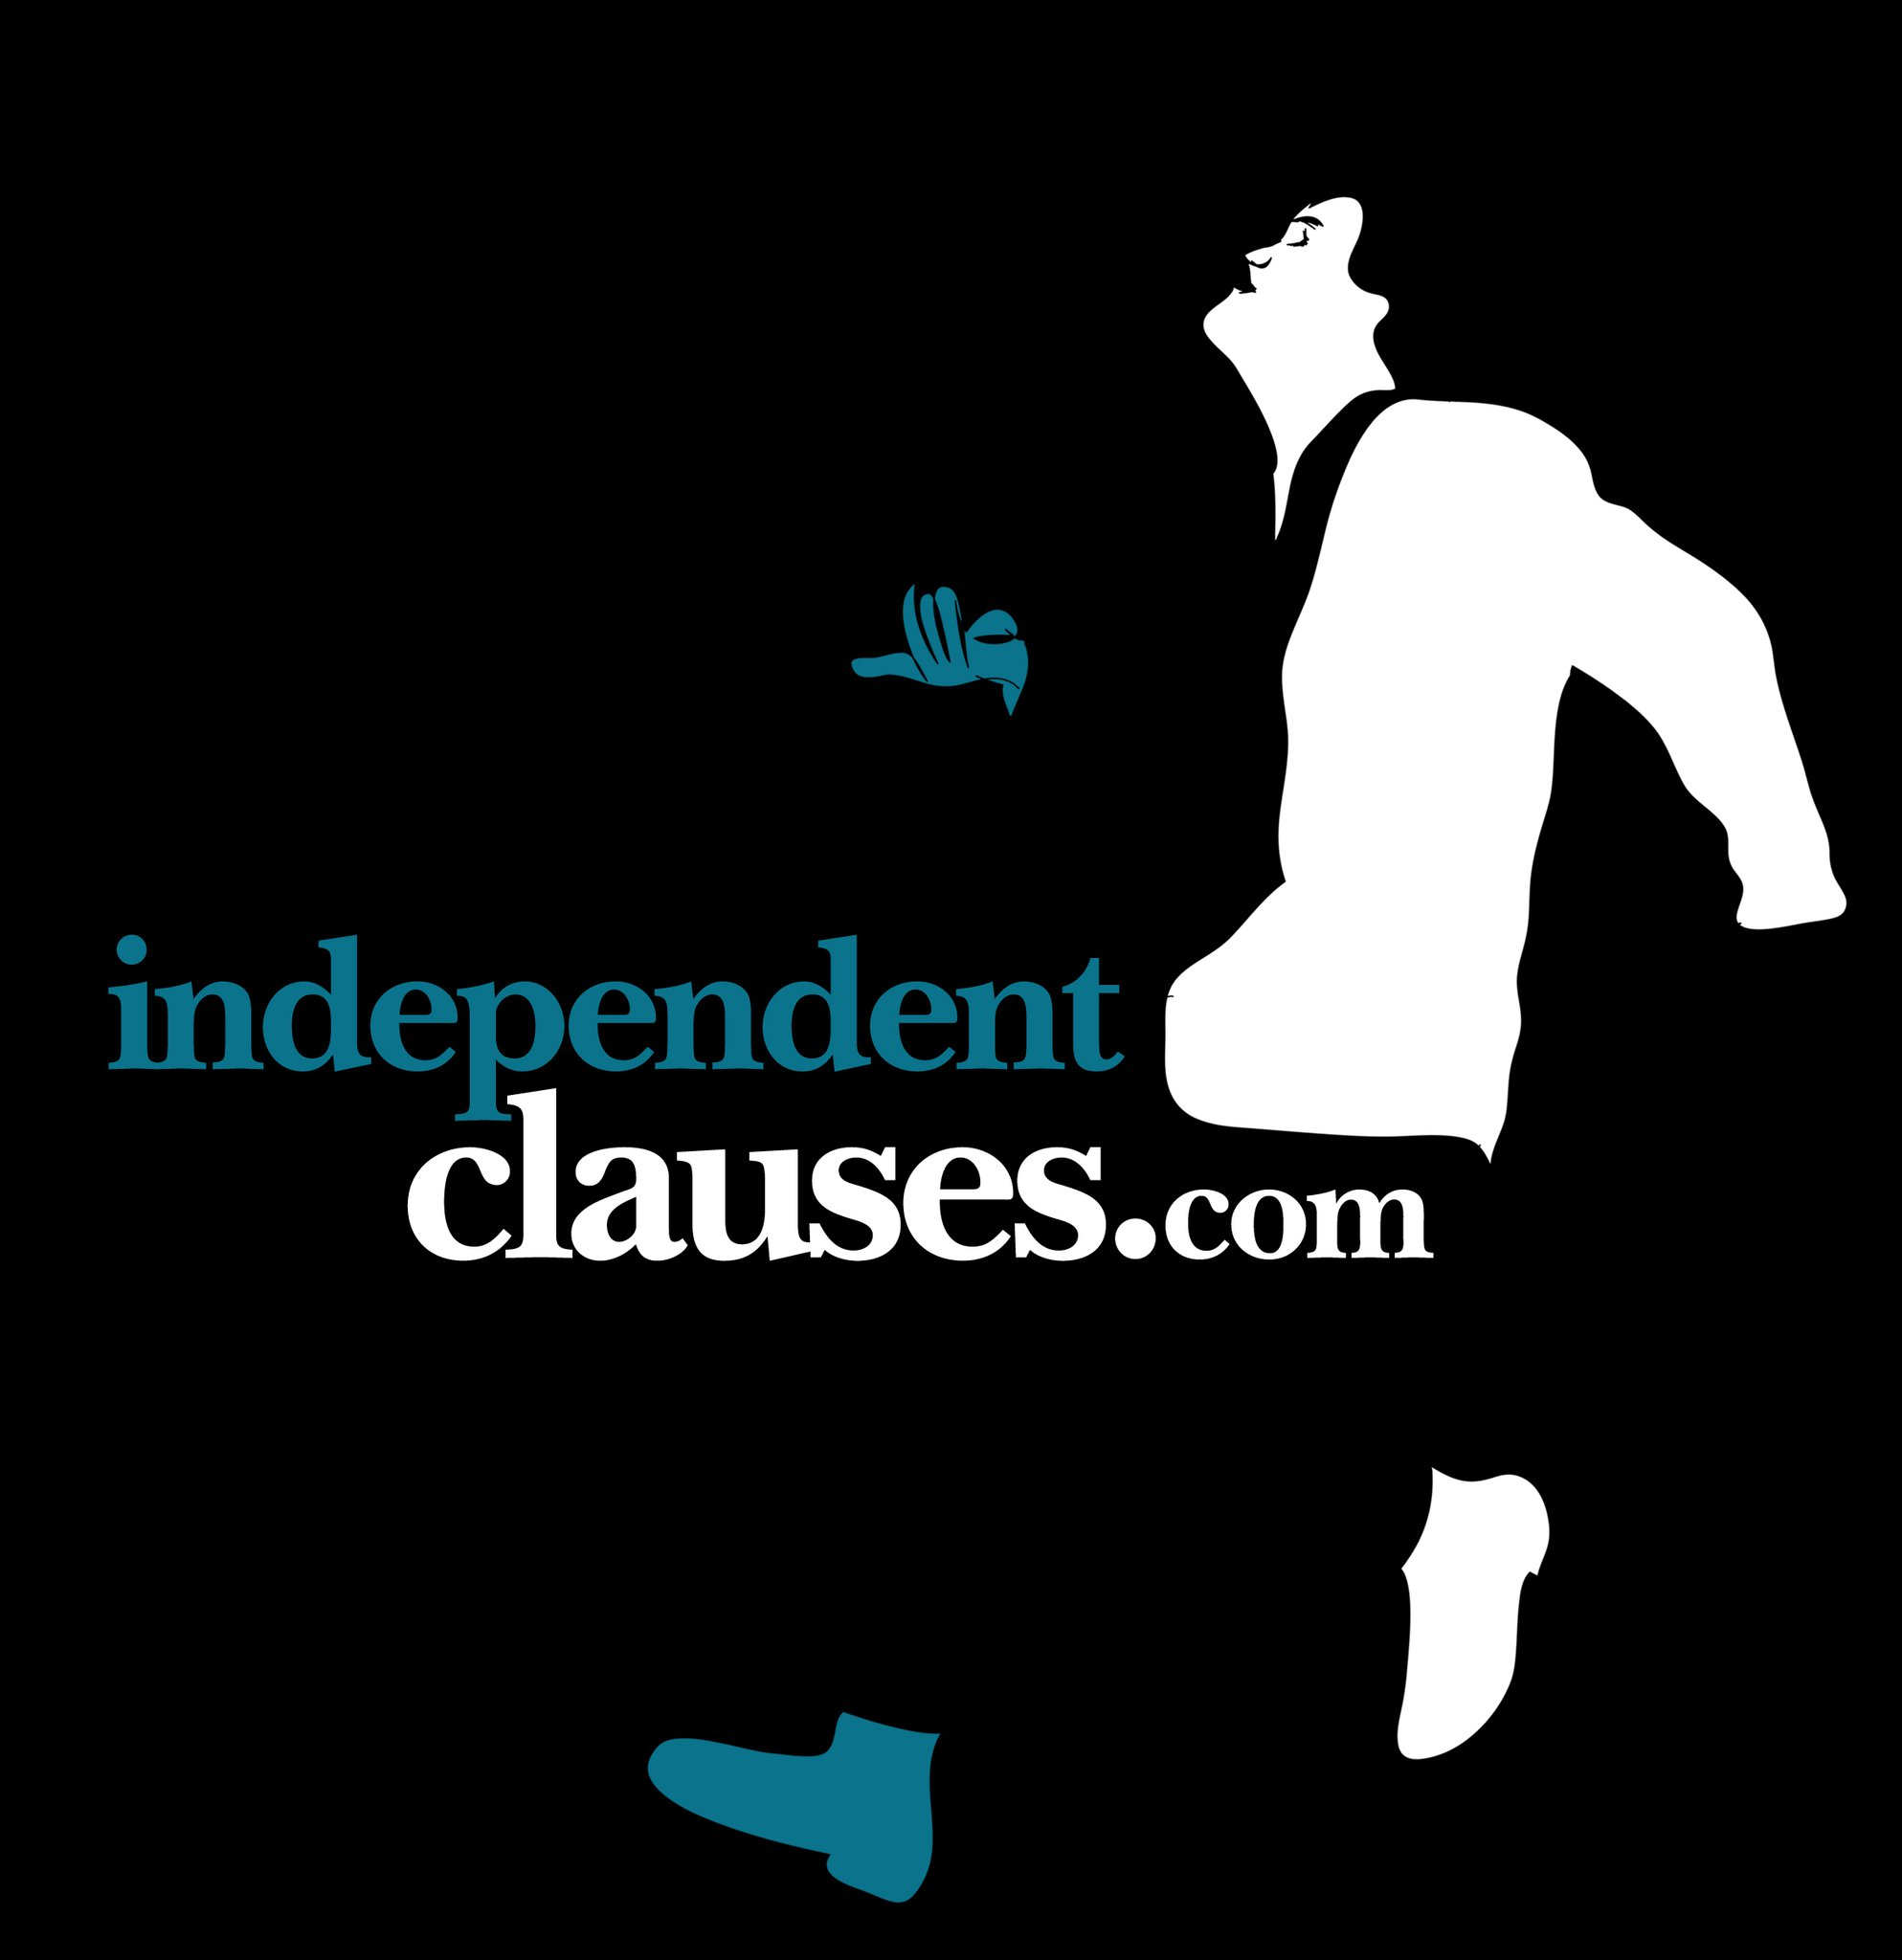 Thayer Sarrano - Independent Clauses